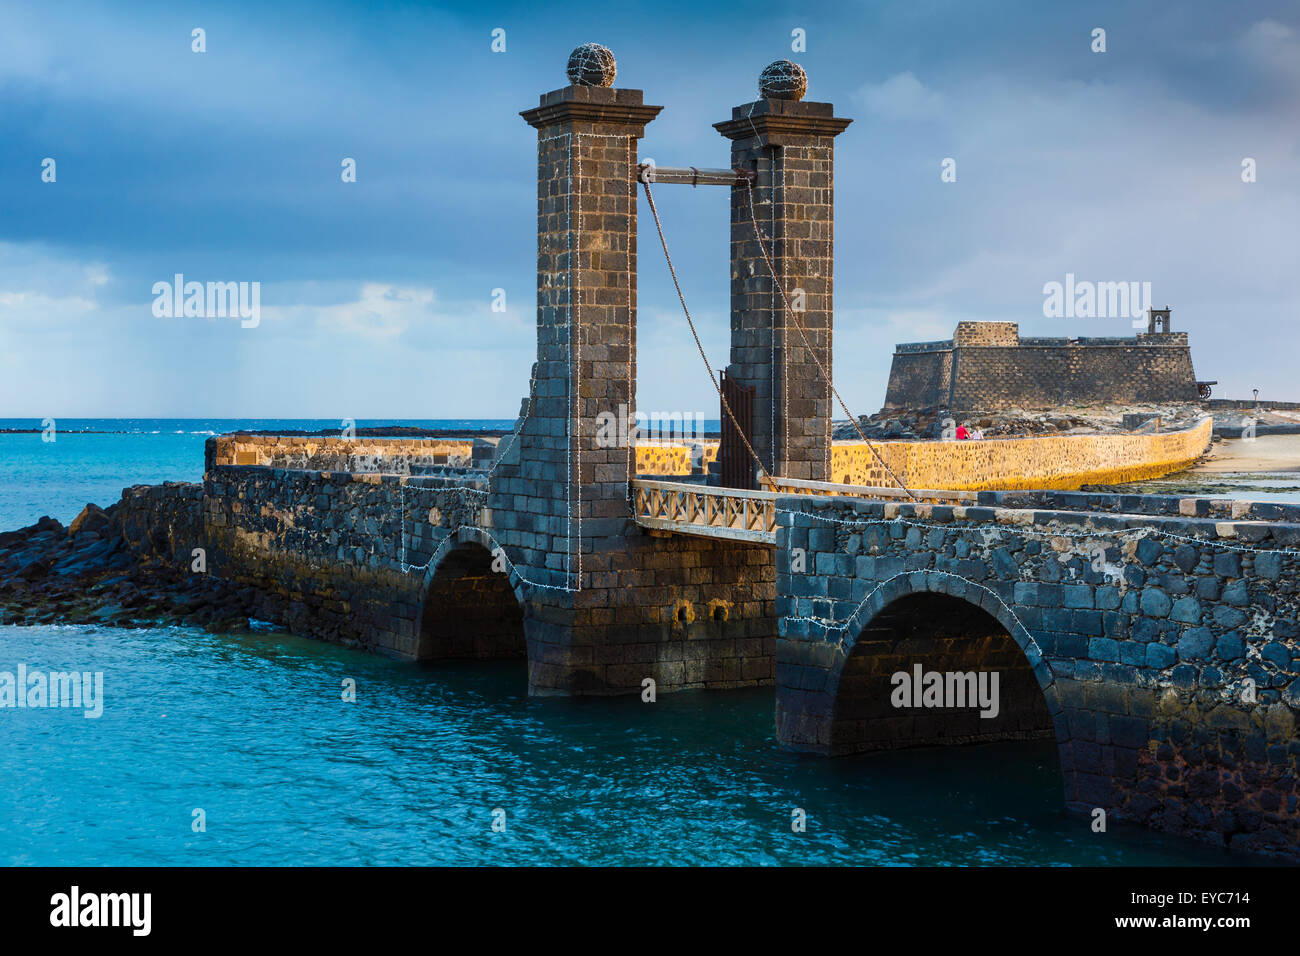 Castle of San Gabriel. Arrecife. Lanzarote, Canary Islands, Spain, Europe. - Stock Image